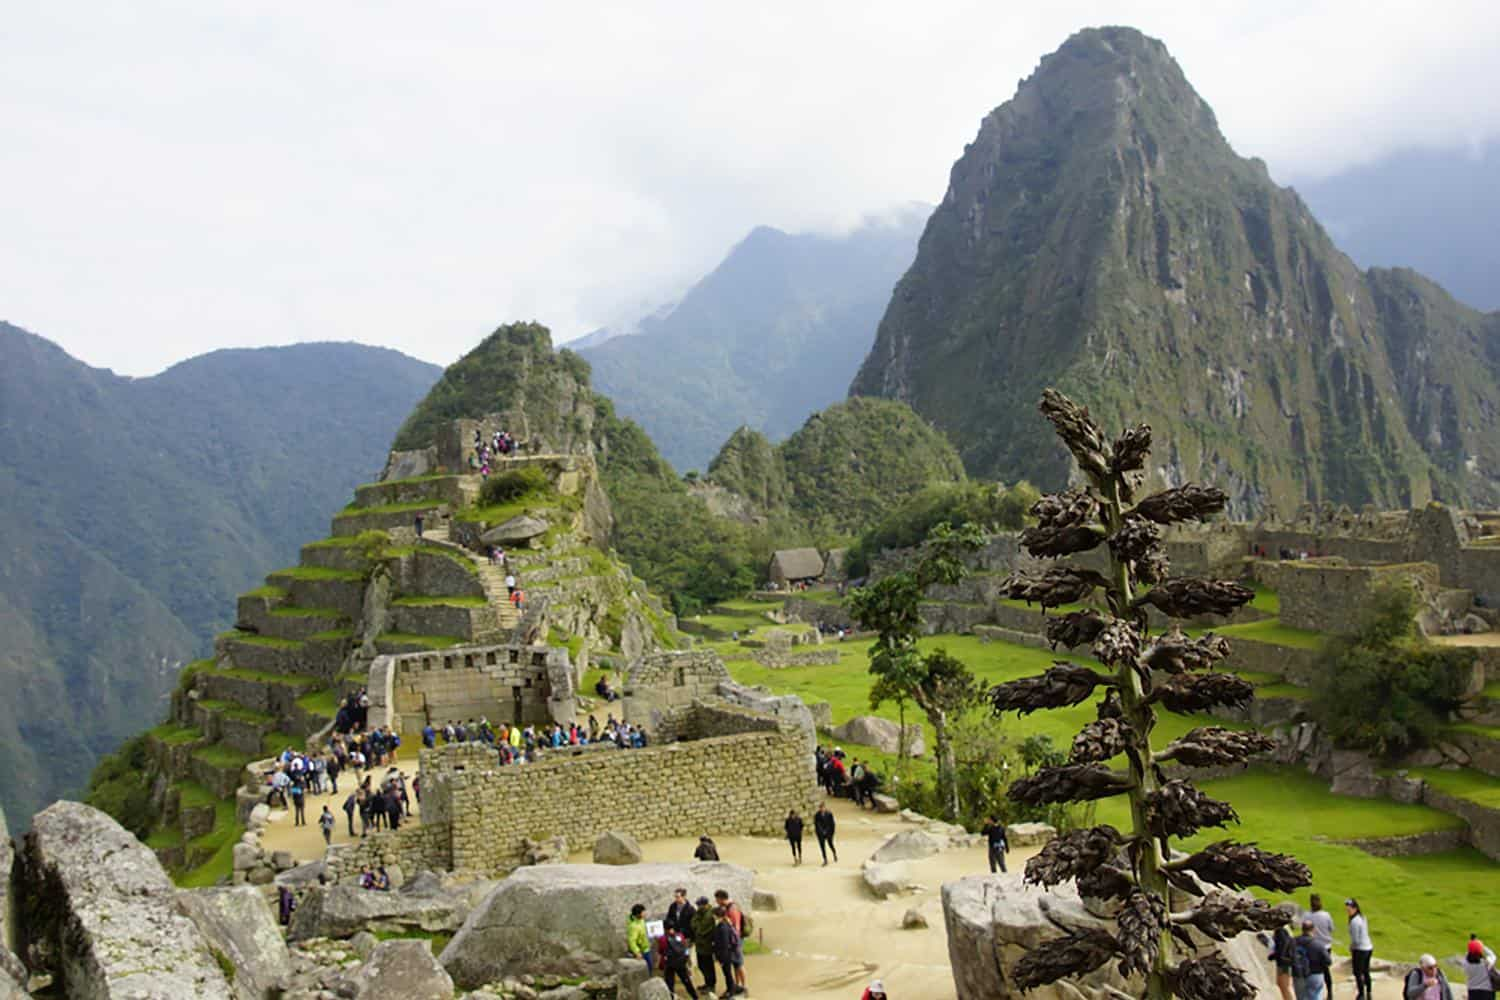 Trail of the Incas